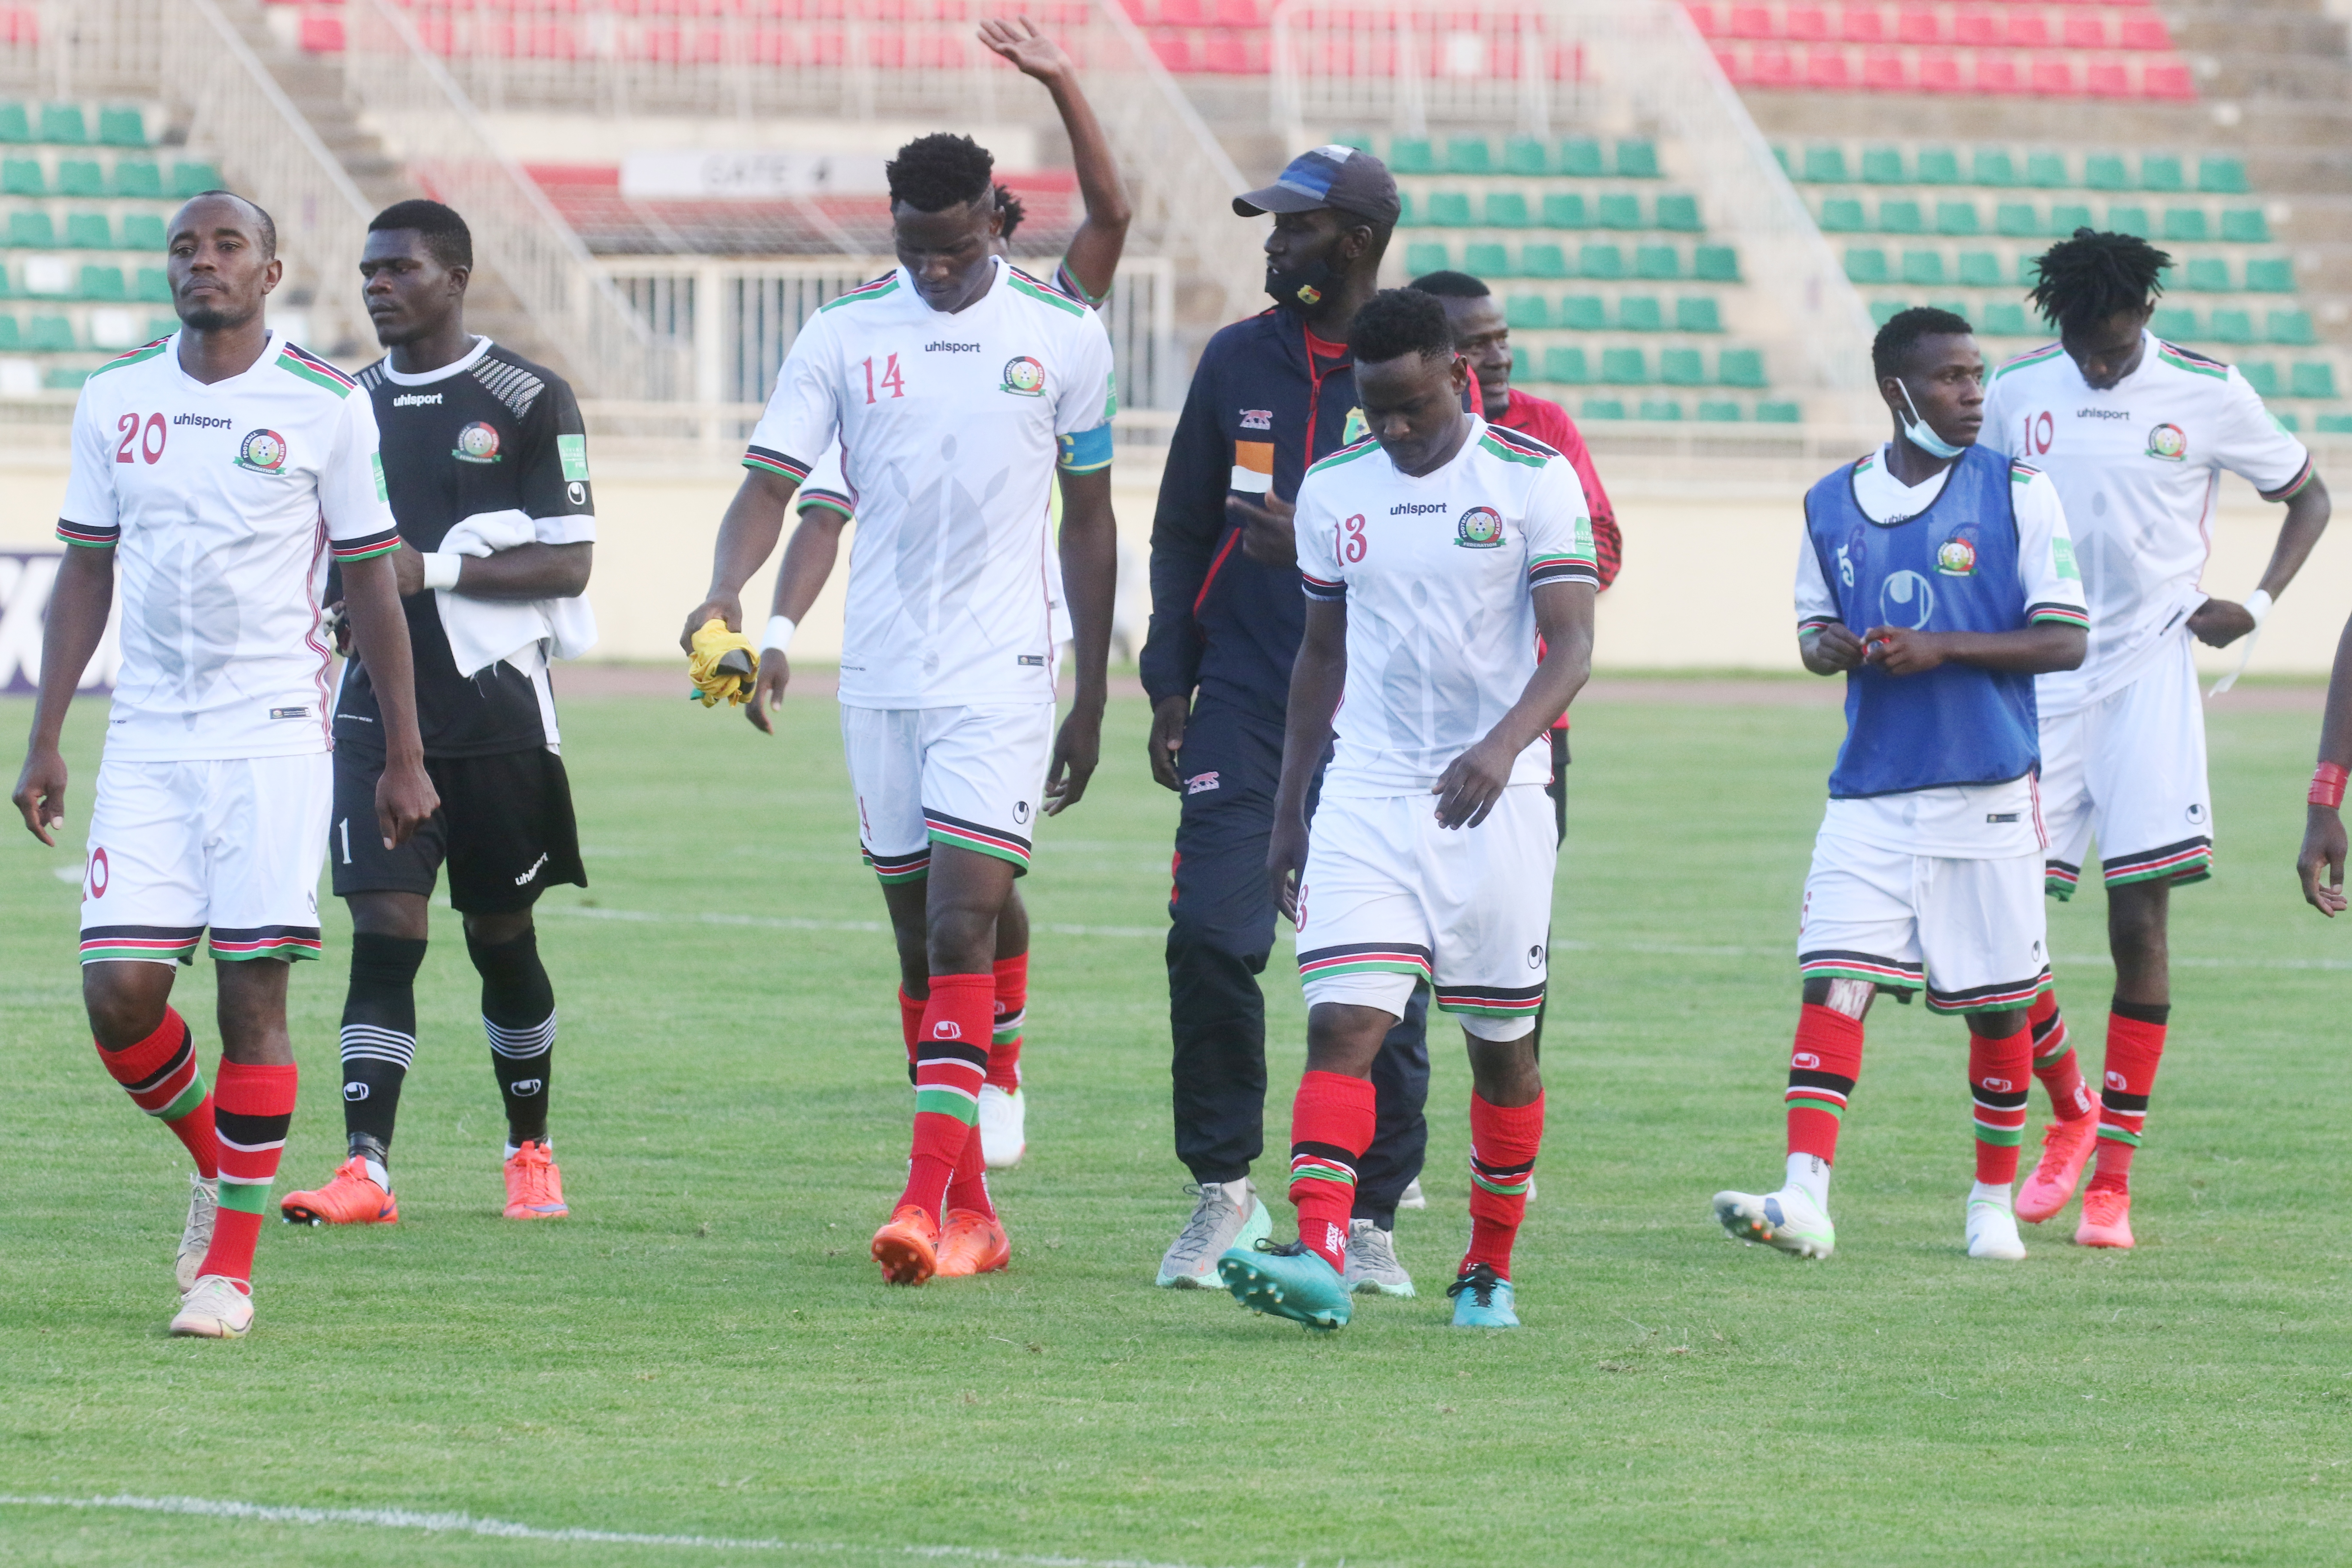 Kenya crash out of 2022 World Cup contention